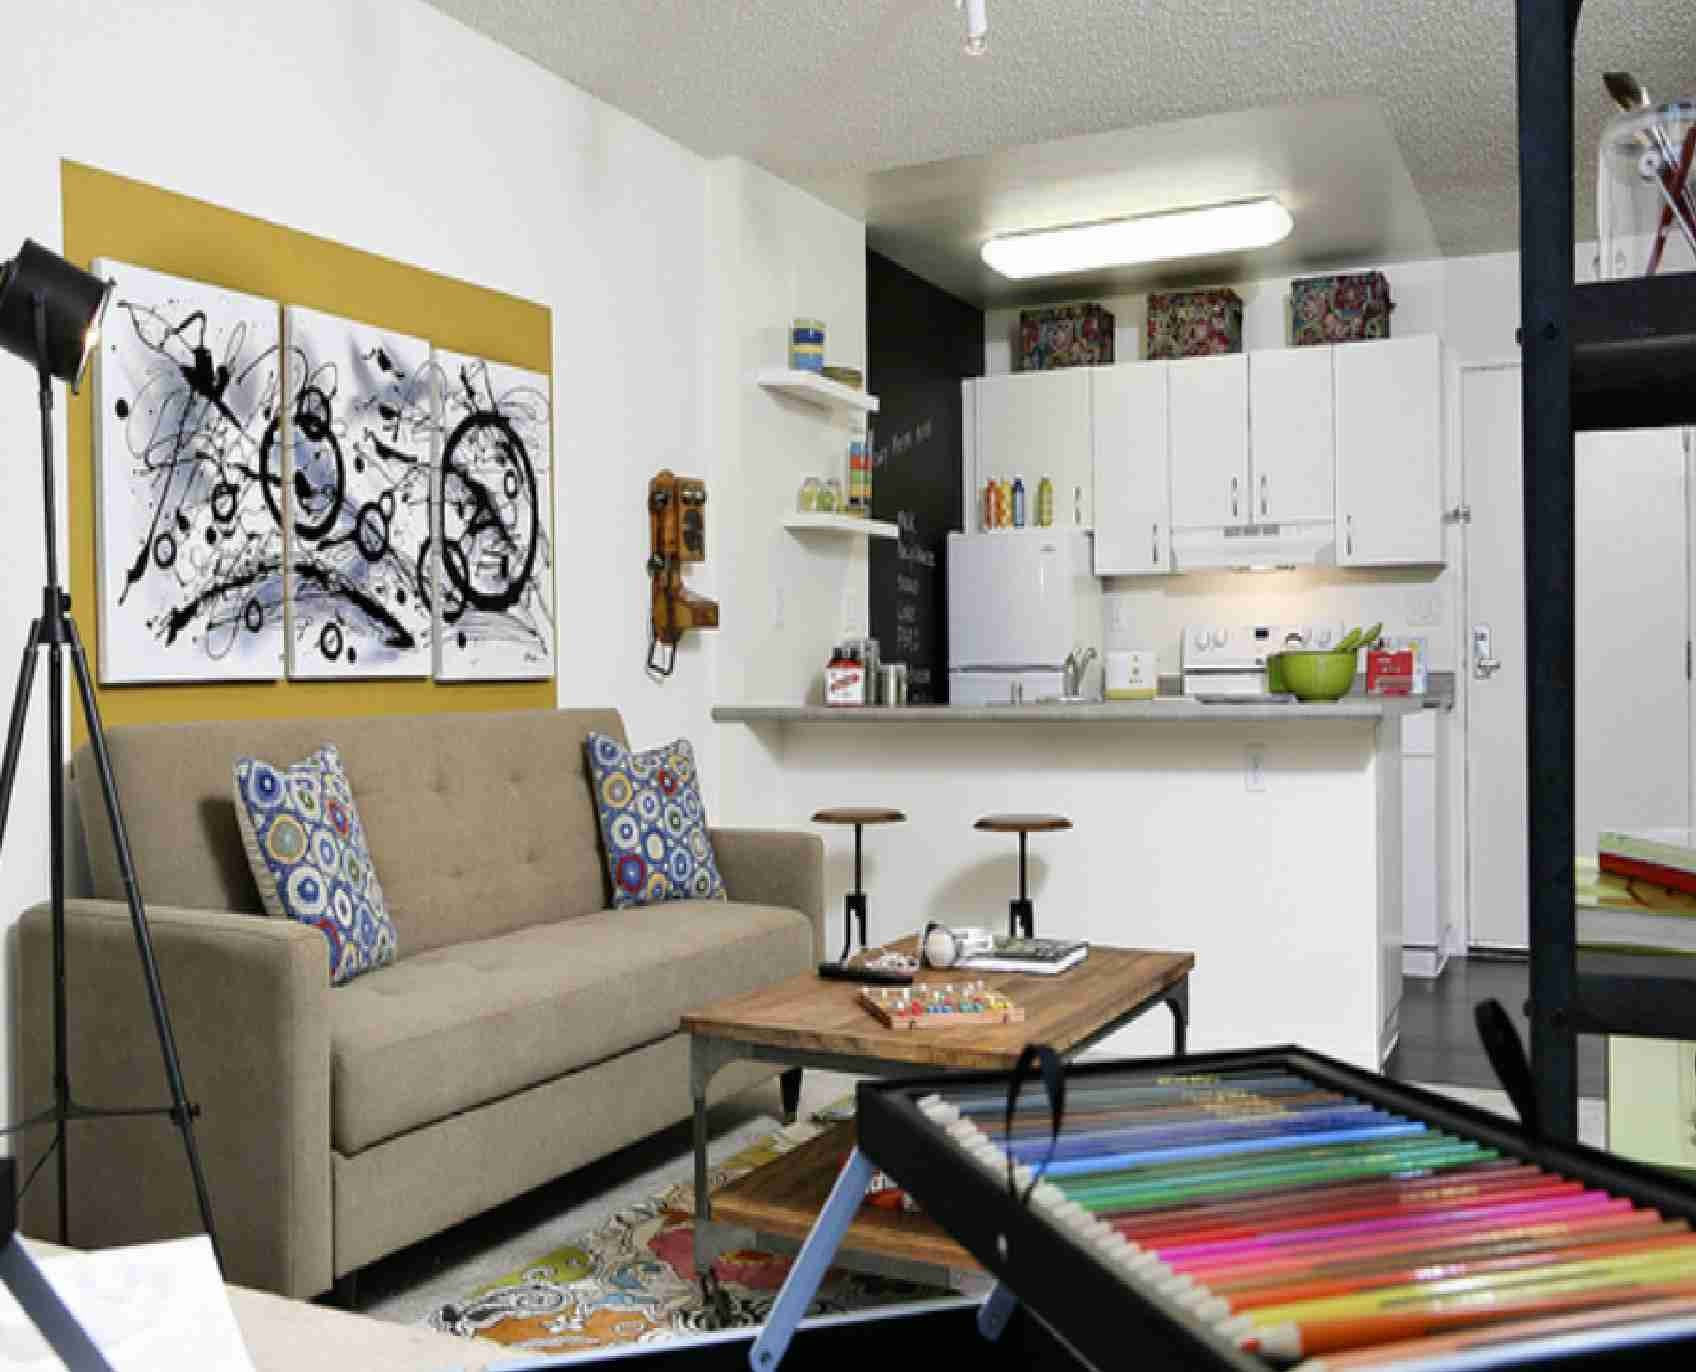 Small Kitchen Living Room Ideas Luxury 10 Tricks On How to Decorate Your Small Space Smashing tops